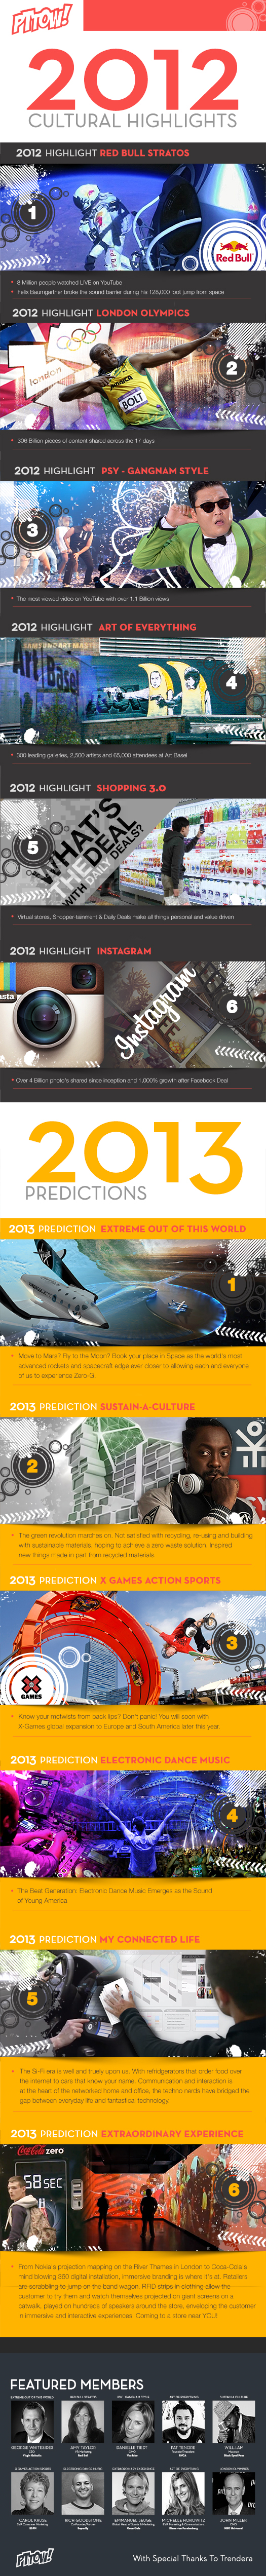 This infographic explores the highlights of 2012 and what things we may have to look forward to in 2013.